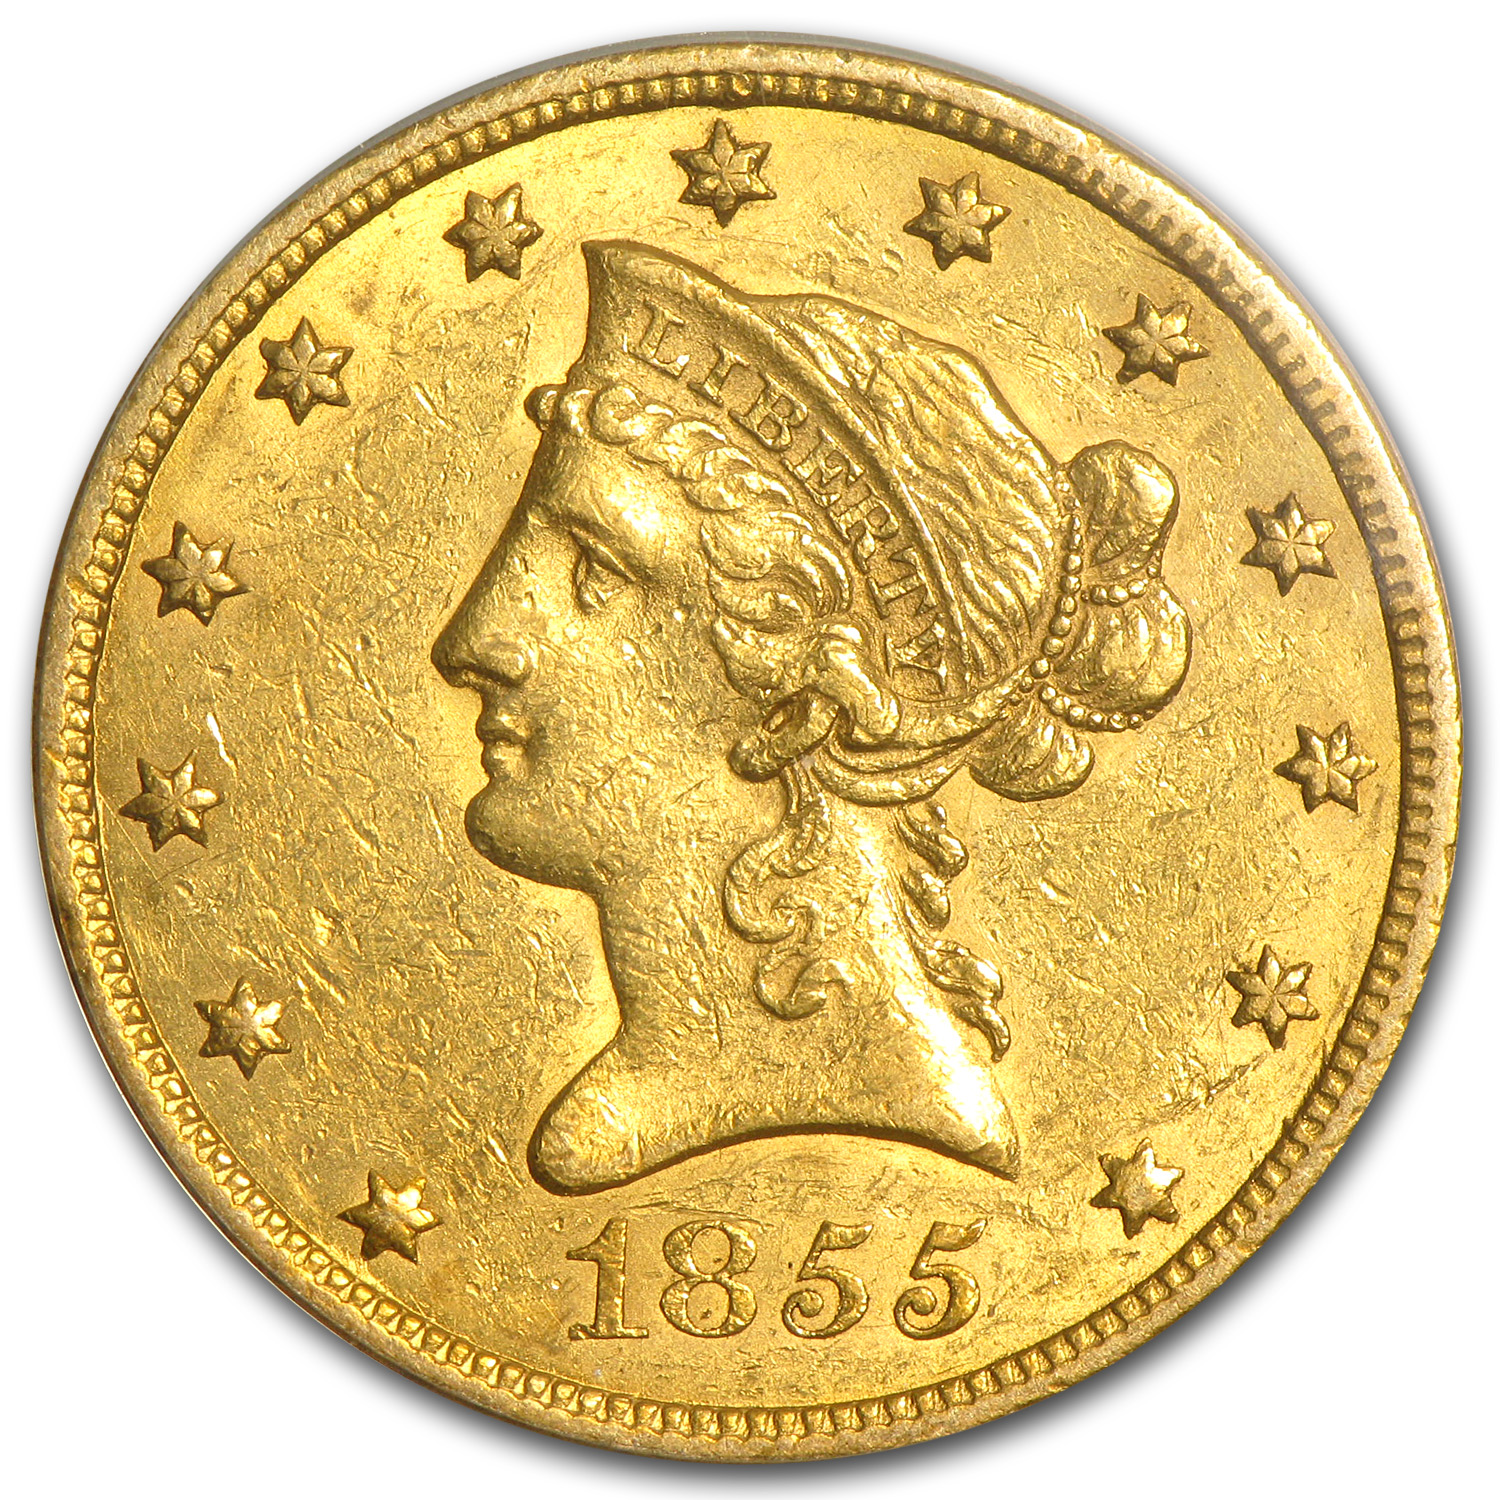 1855 $10 Liberty Gold Eagle Almost Uncirculated